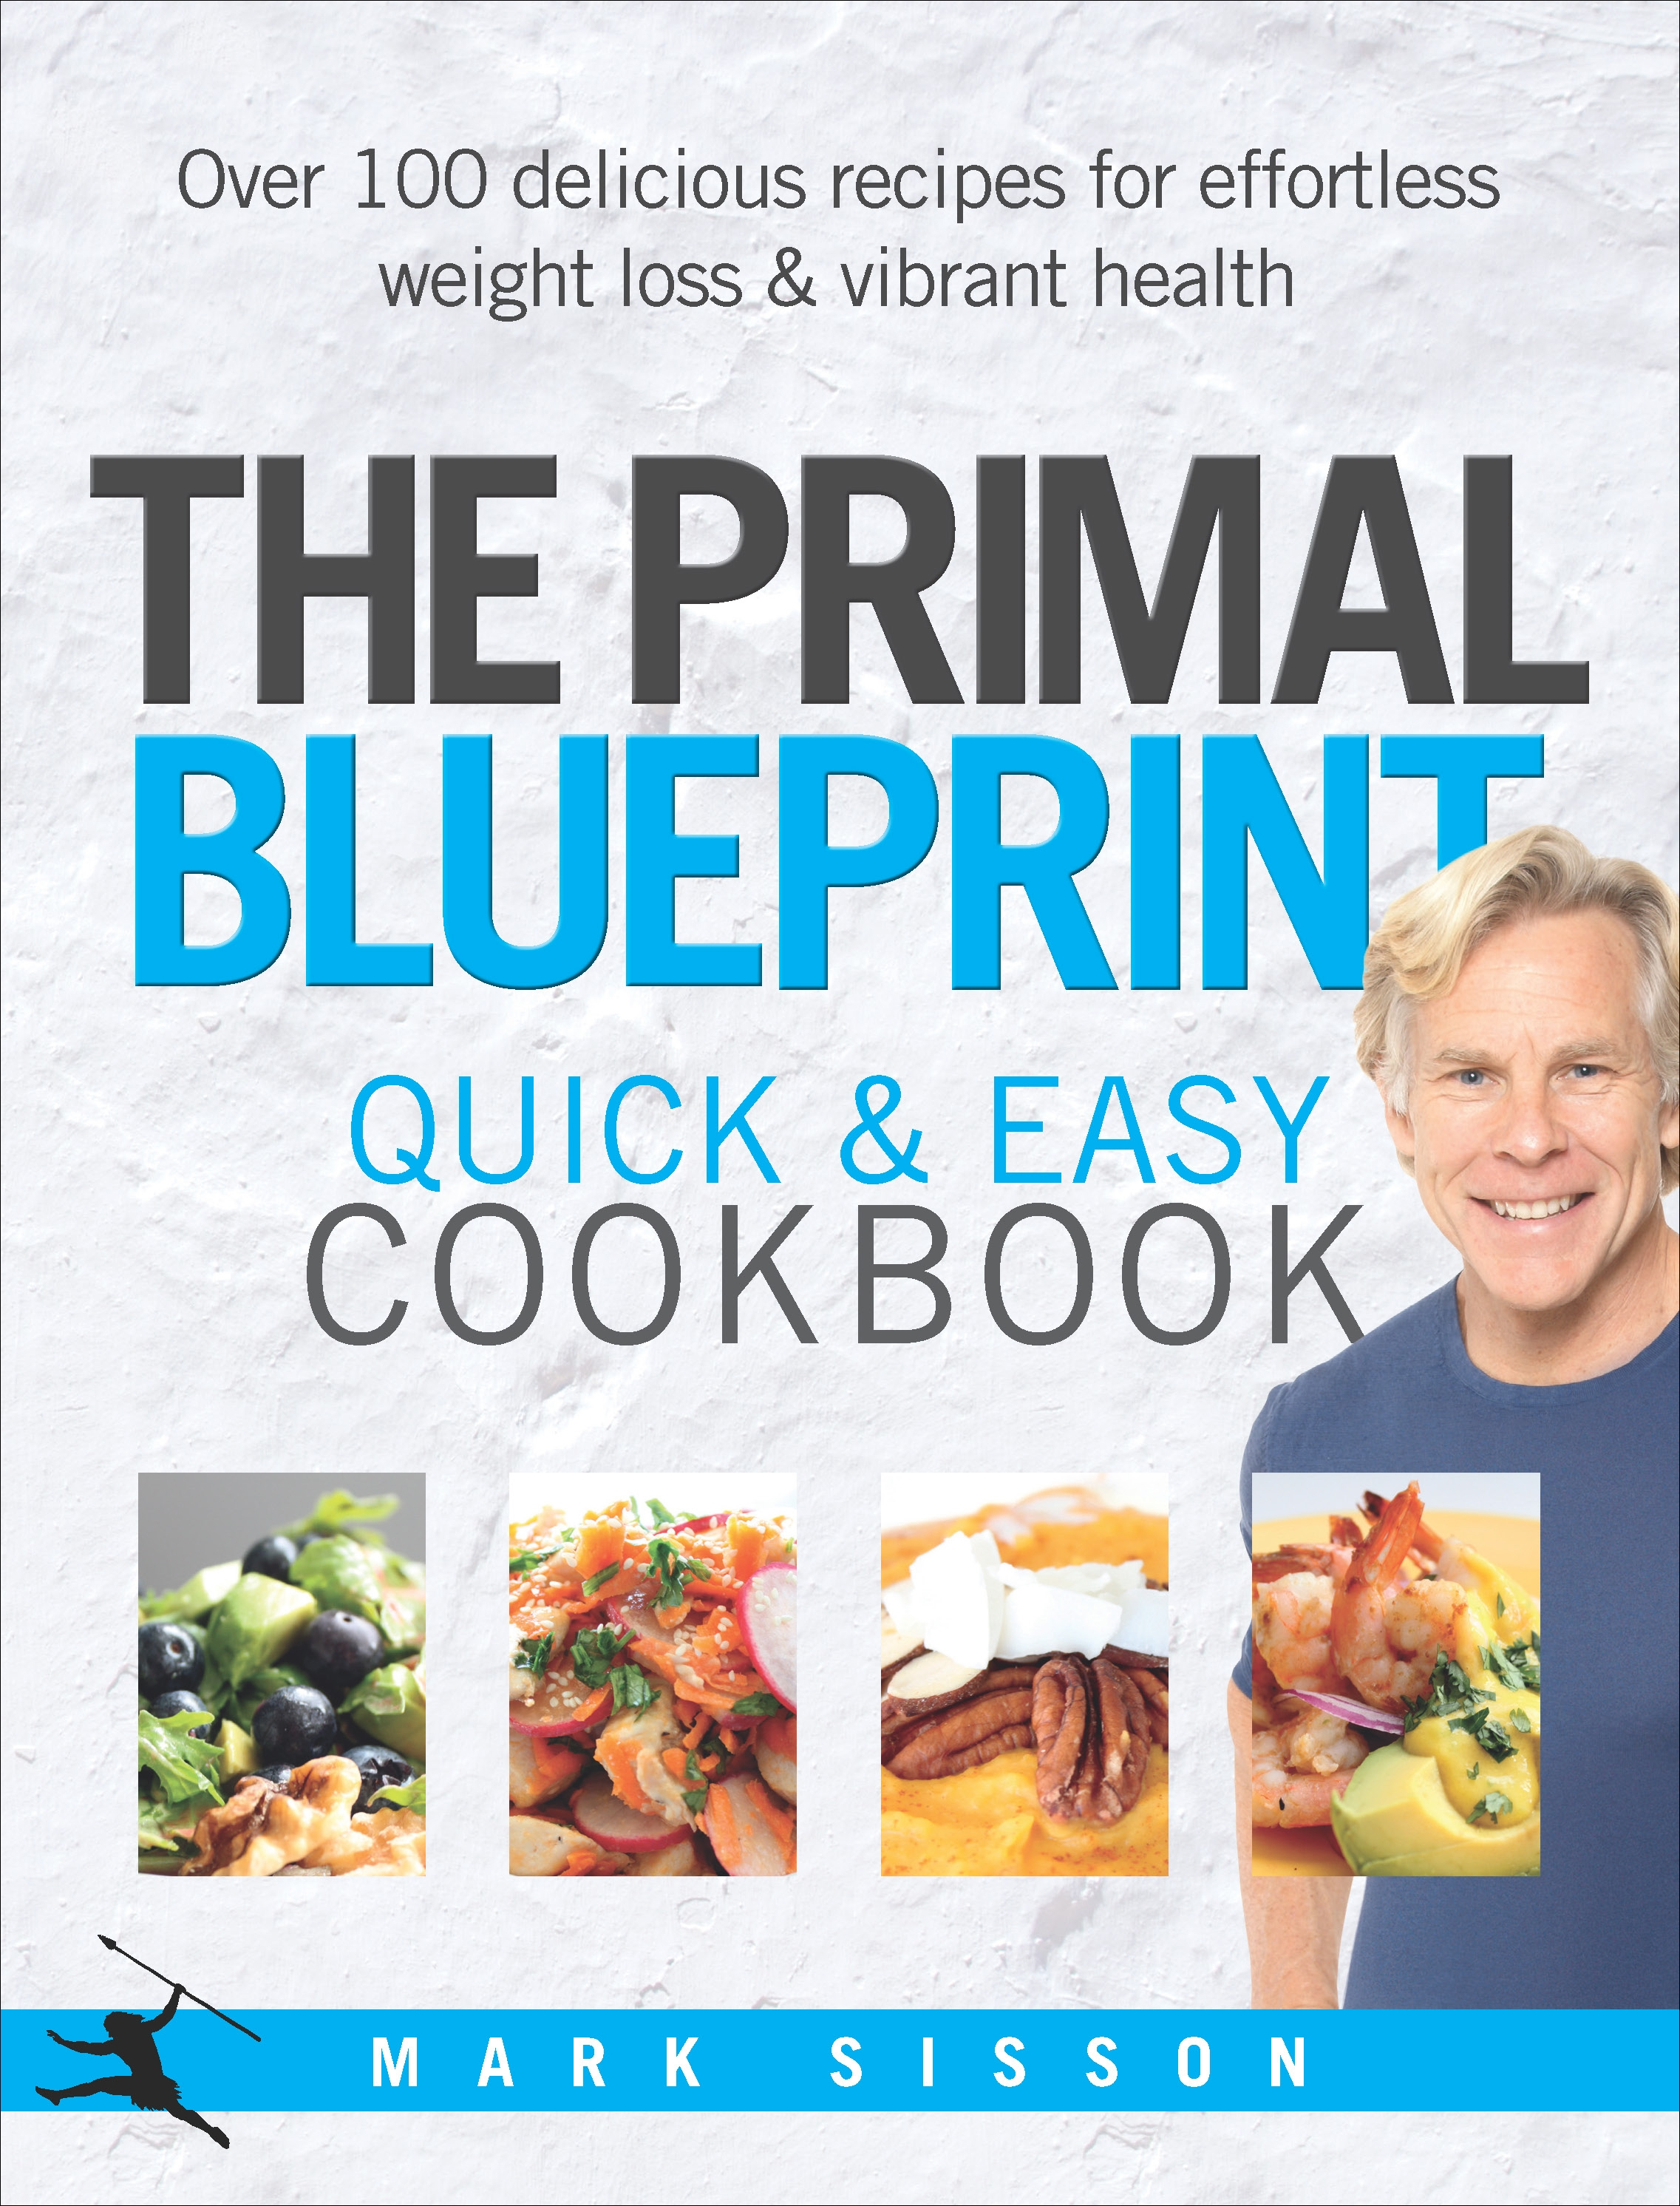 The primal blueprint quick and easy cookbook by mark sisson the primal blueprint quick and easy cookbook malvernweather